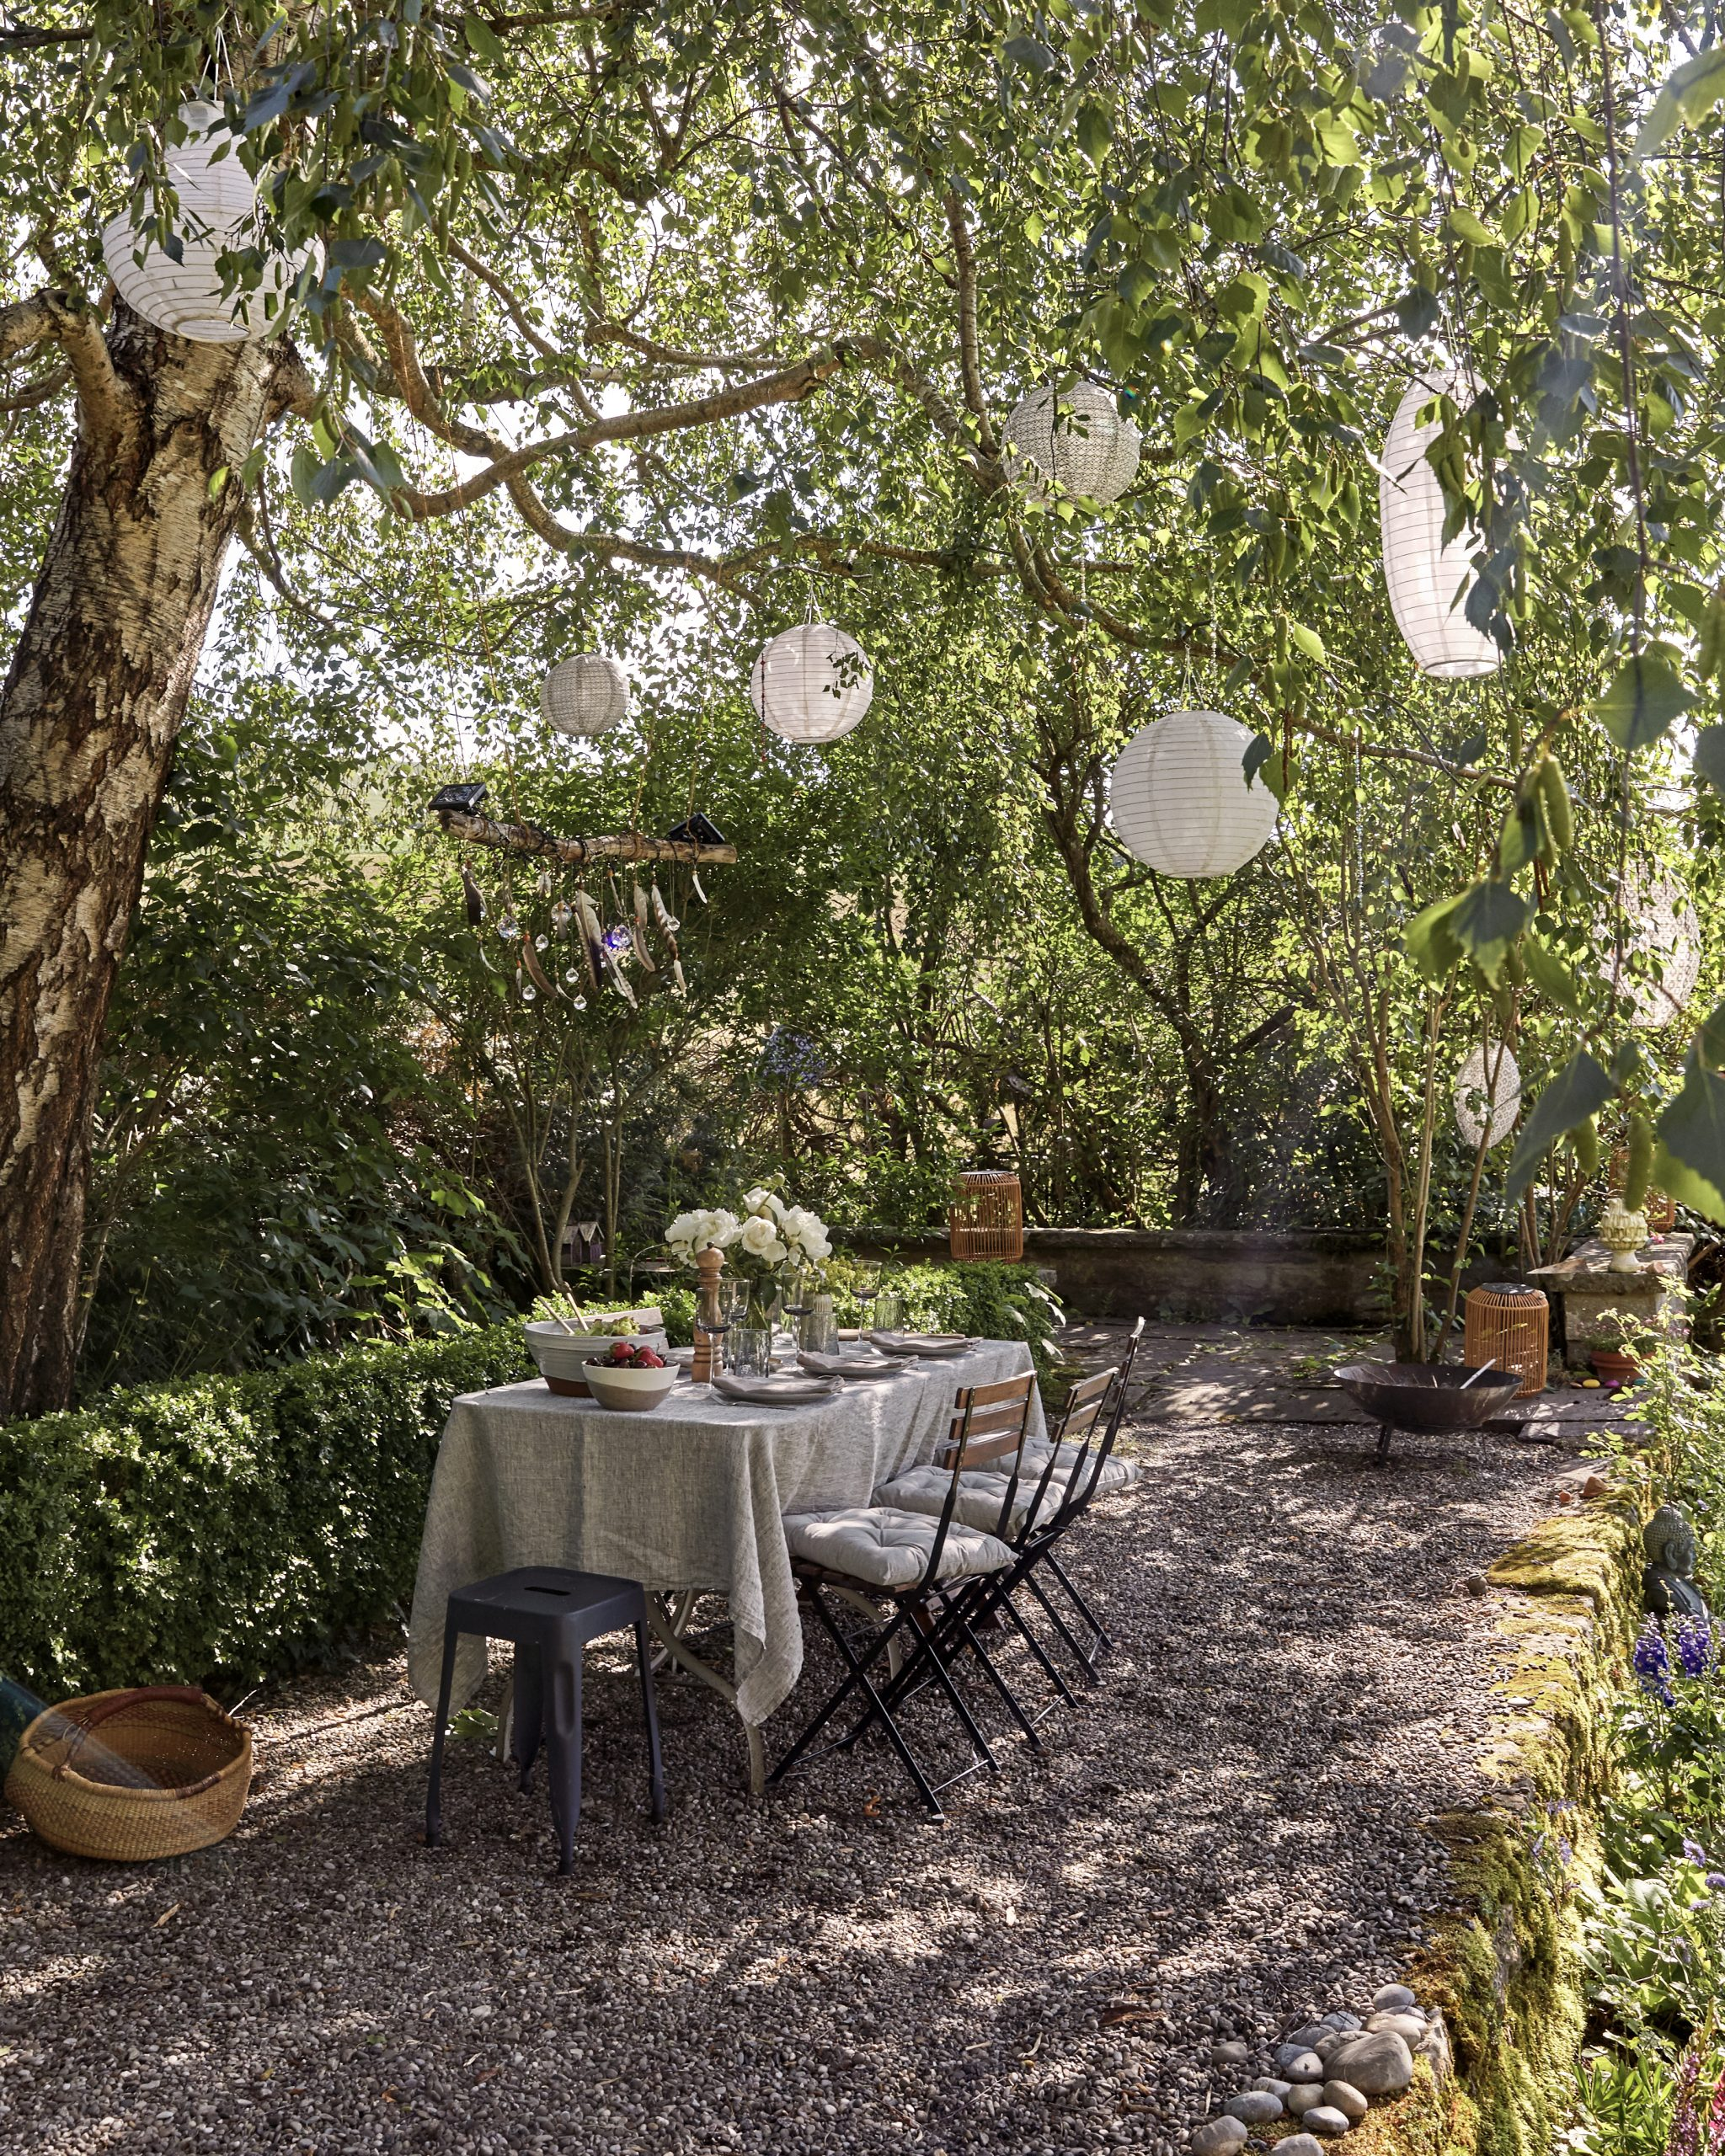 One of a kind villa in the Swiss countryside - table in the garden